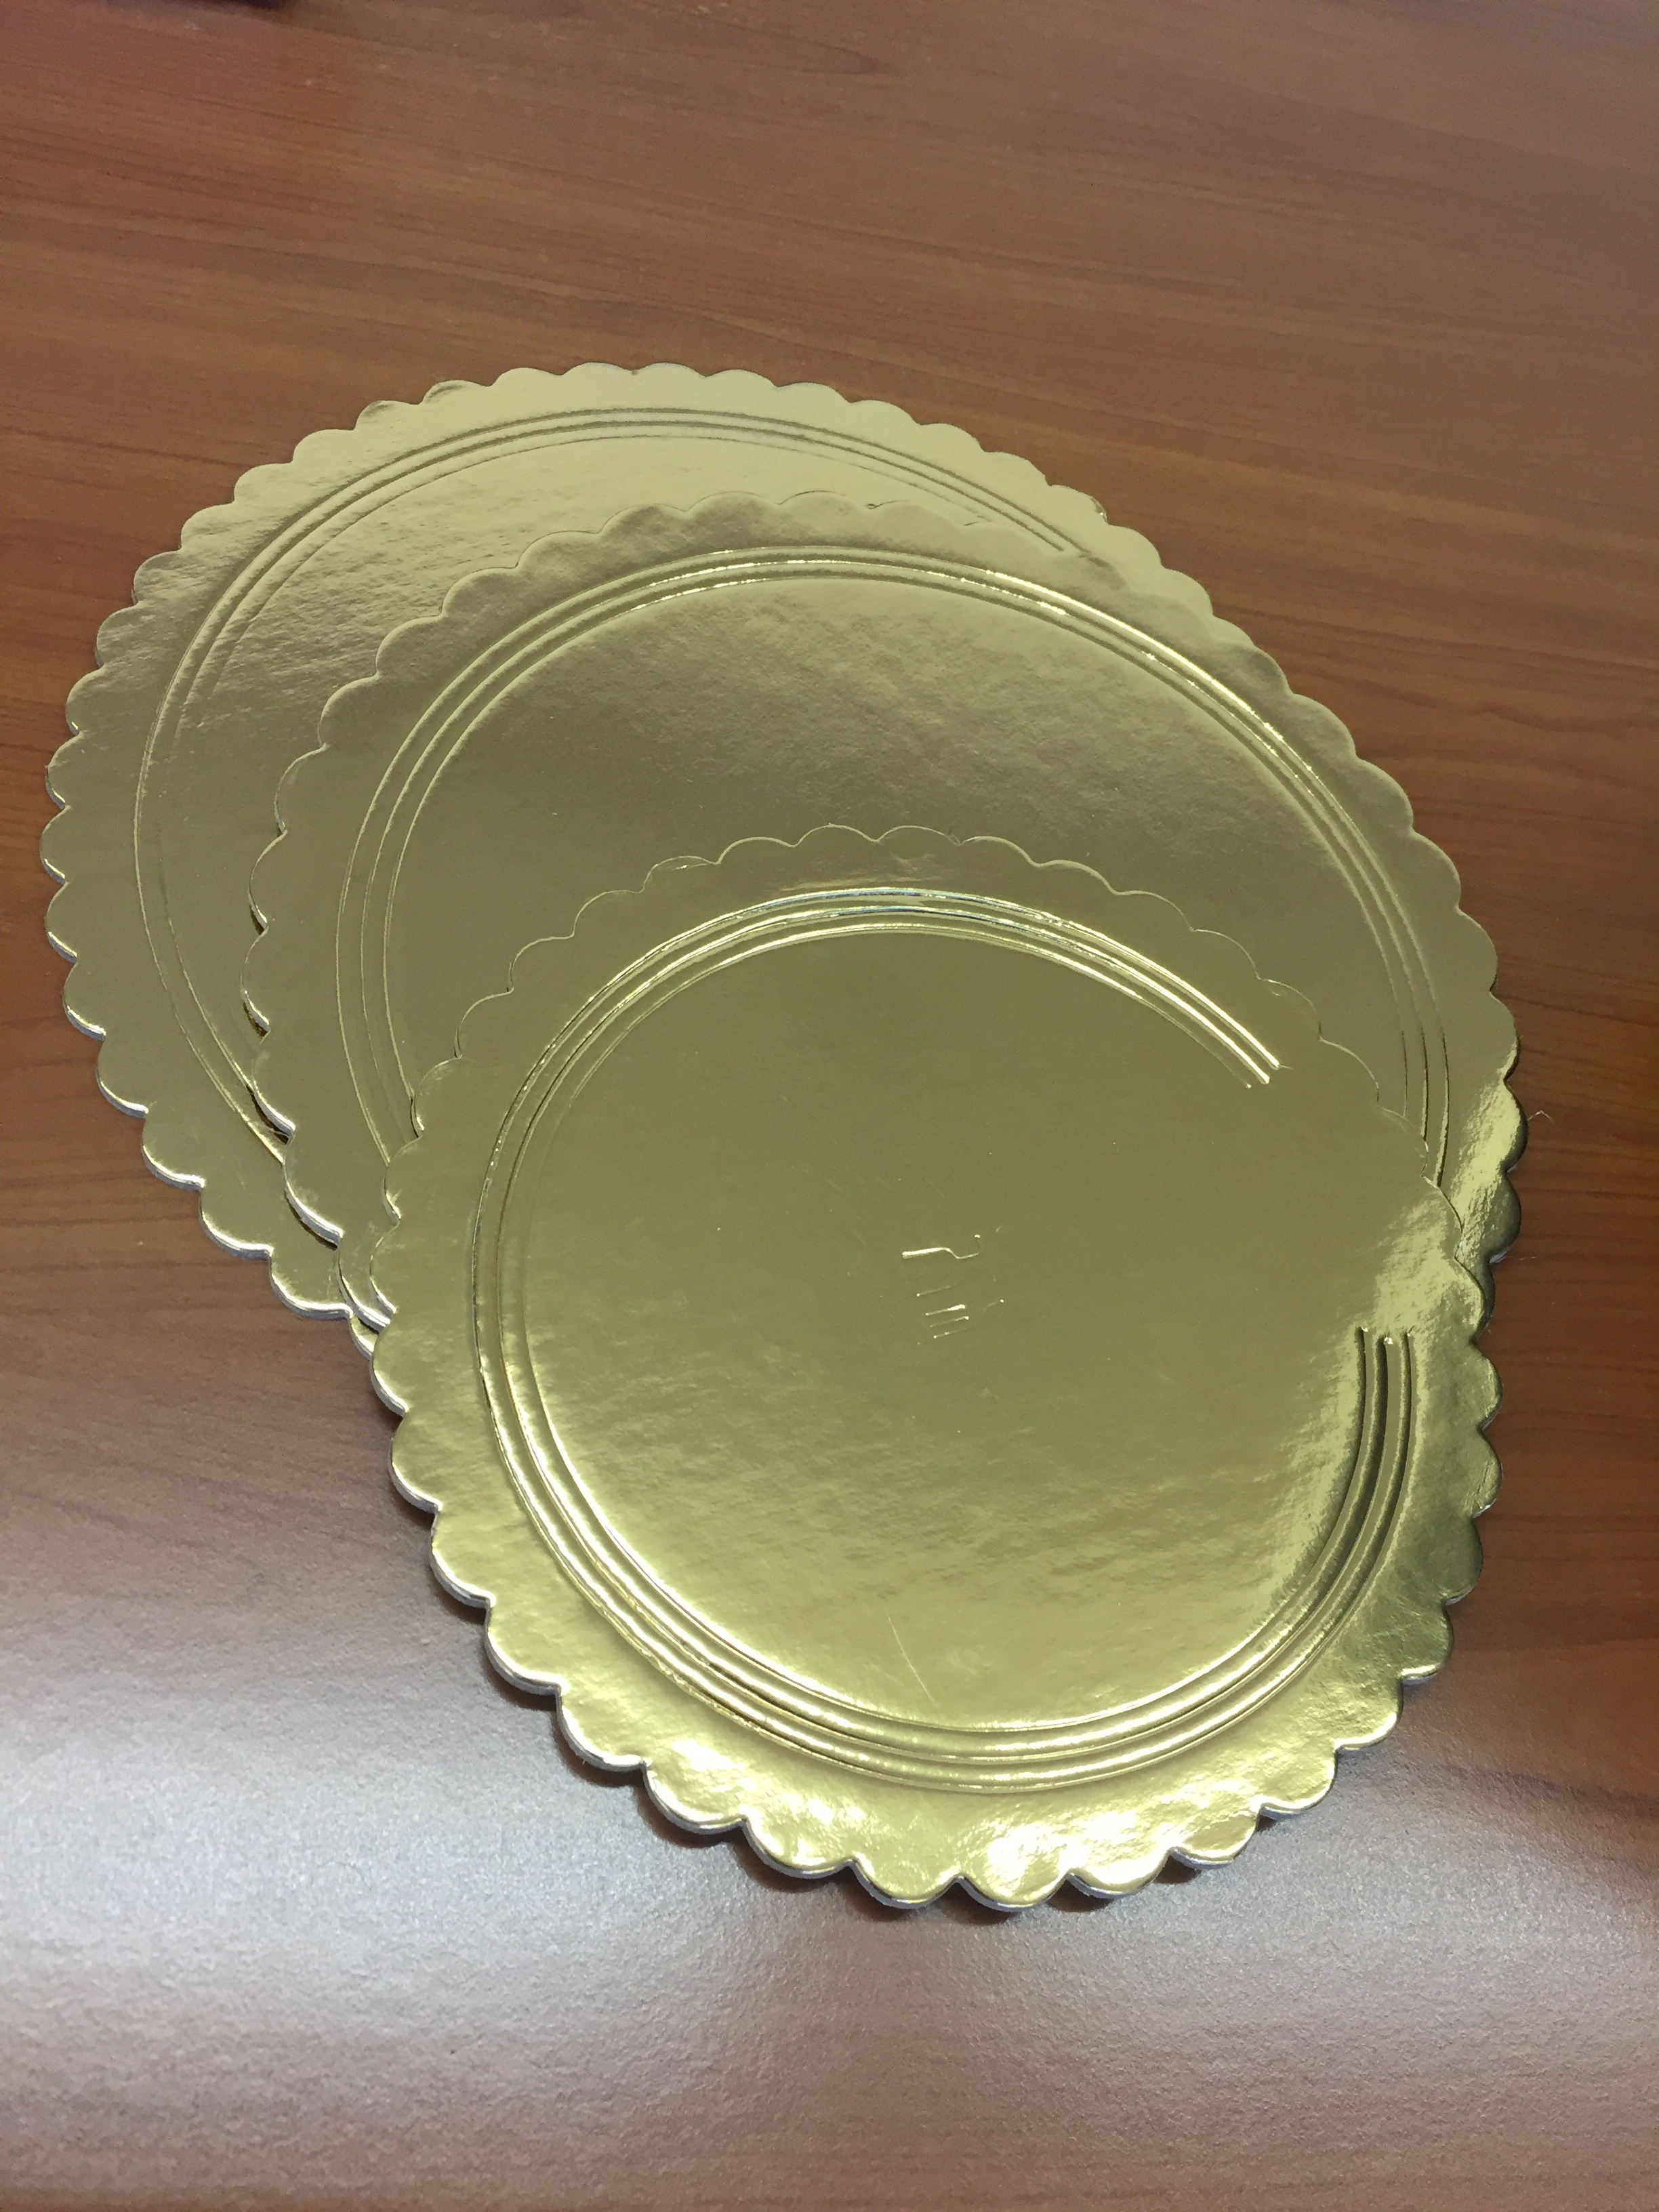 Cake boards and trays